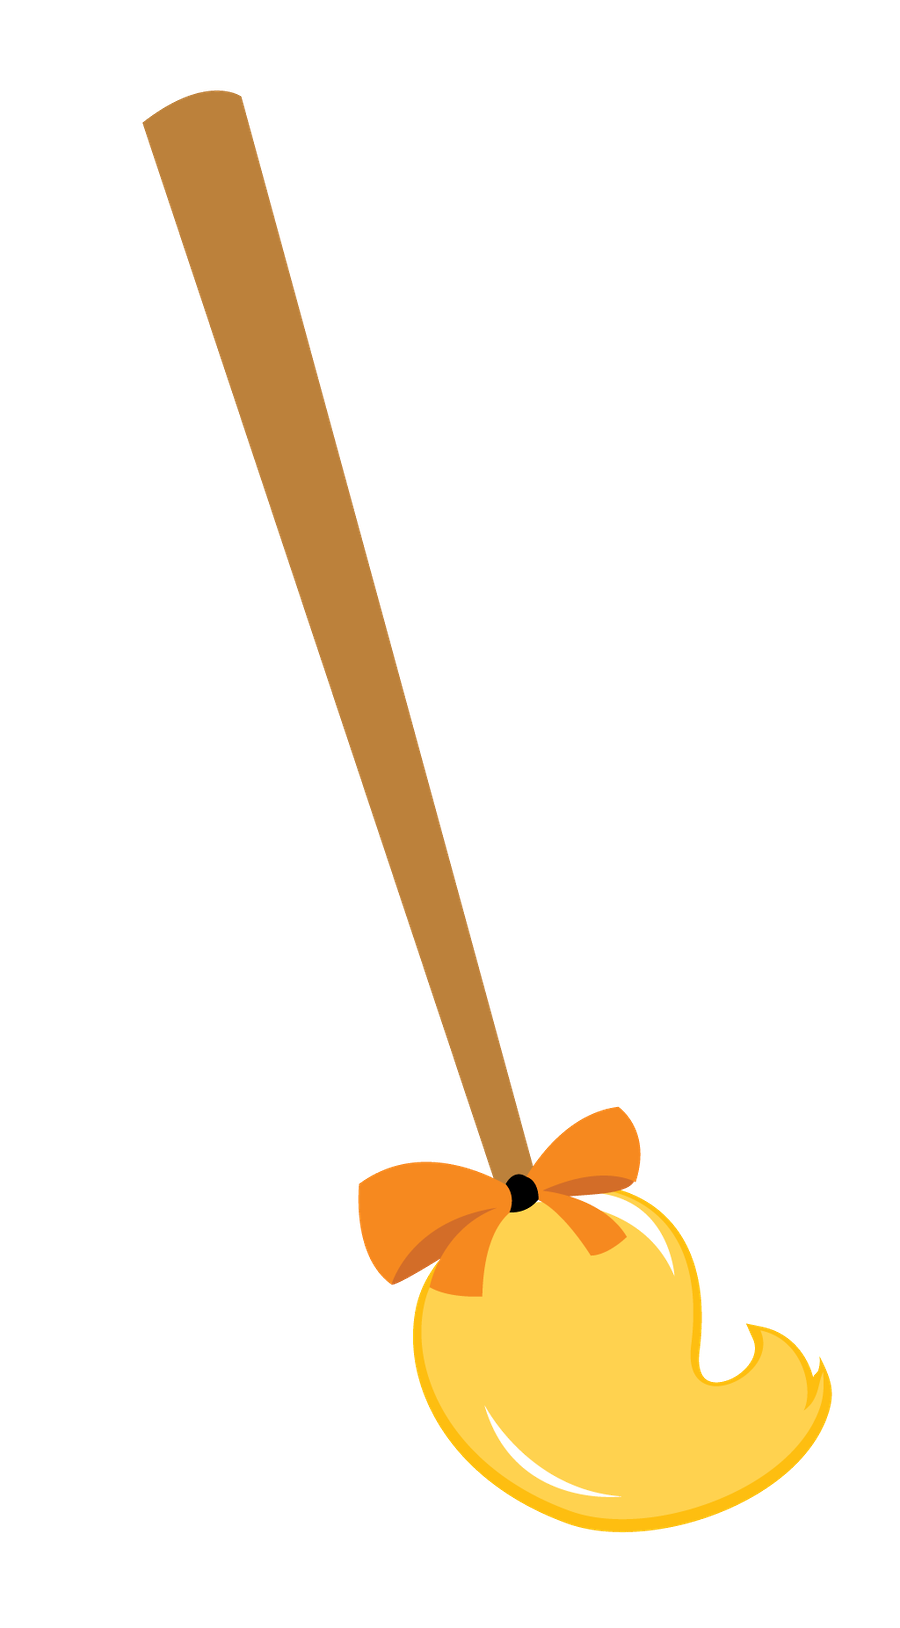 ZWD_Witch_Accessories06.png Halloween clipart